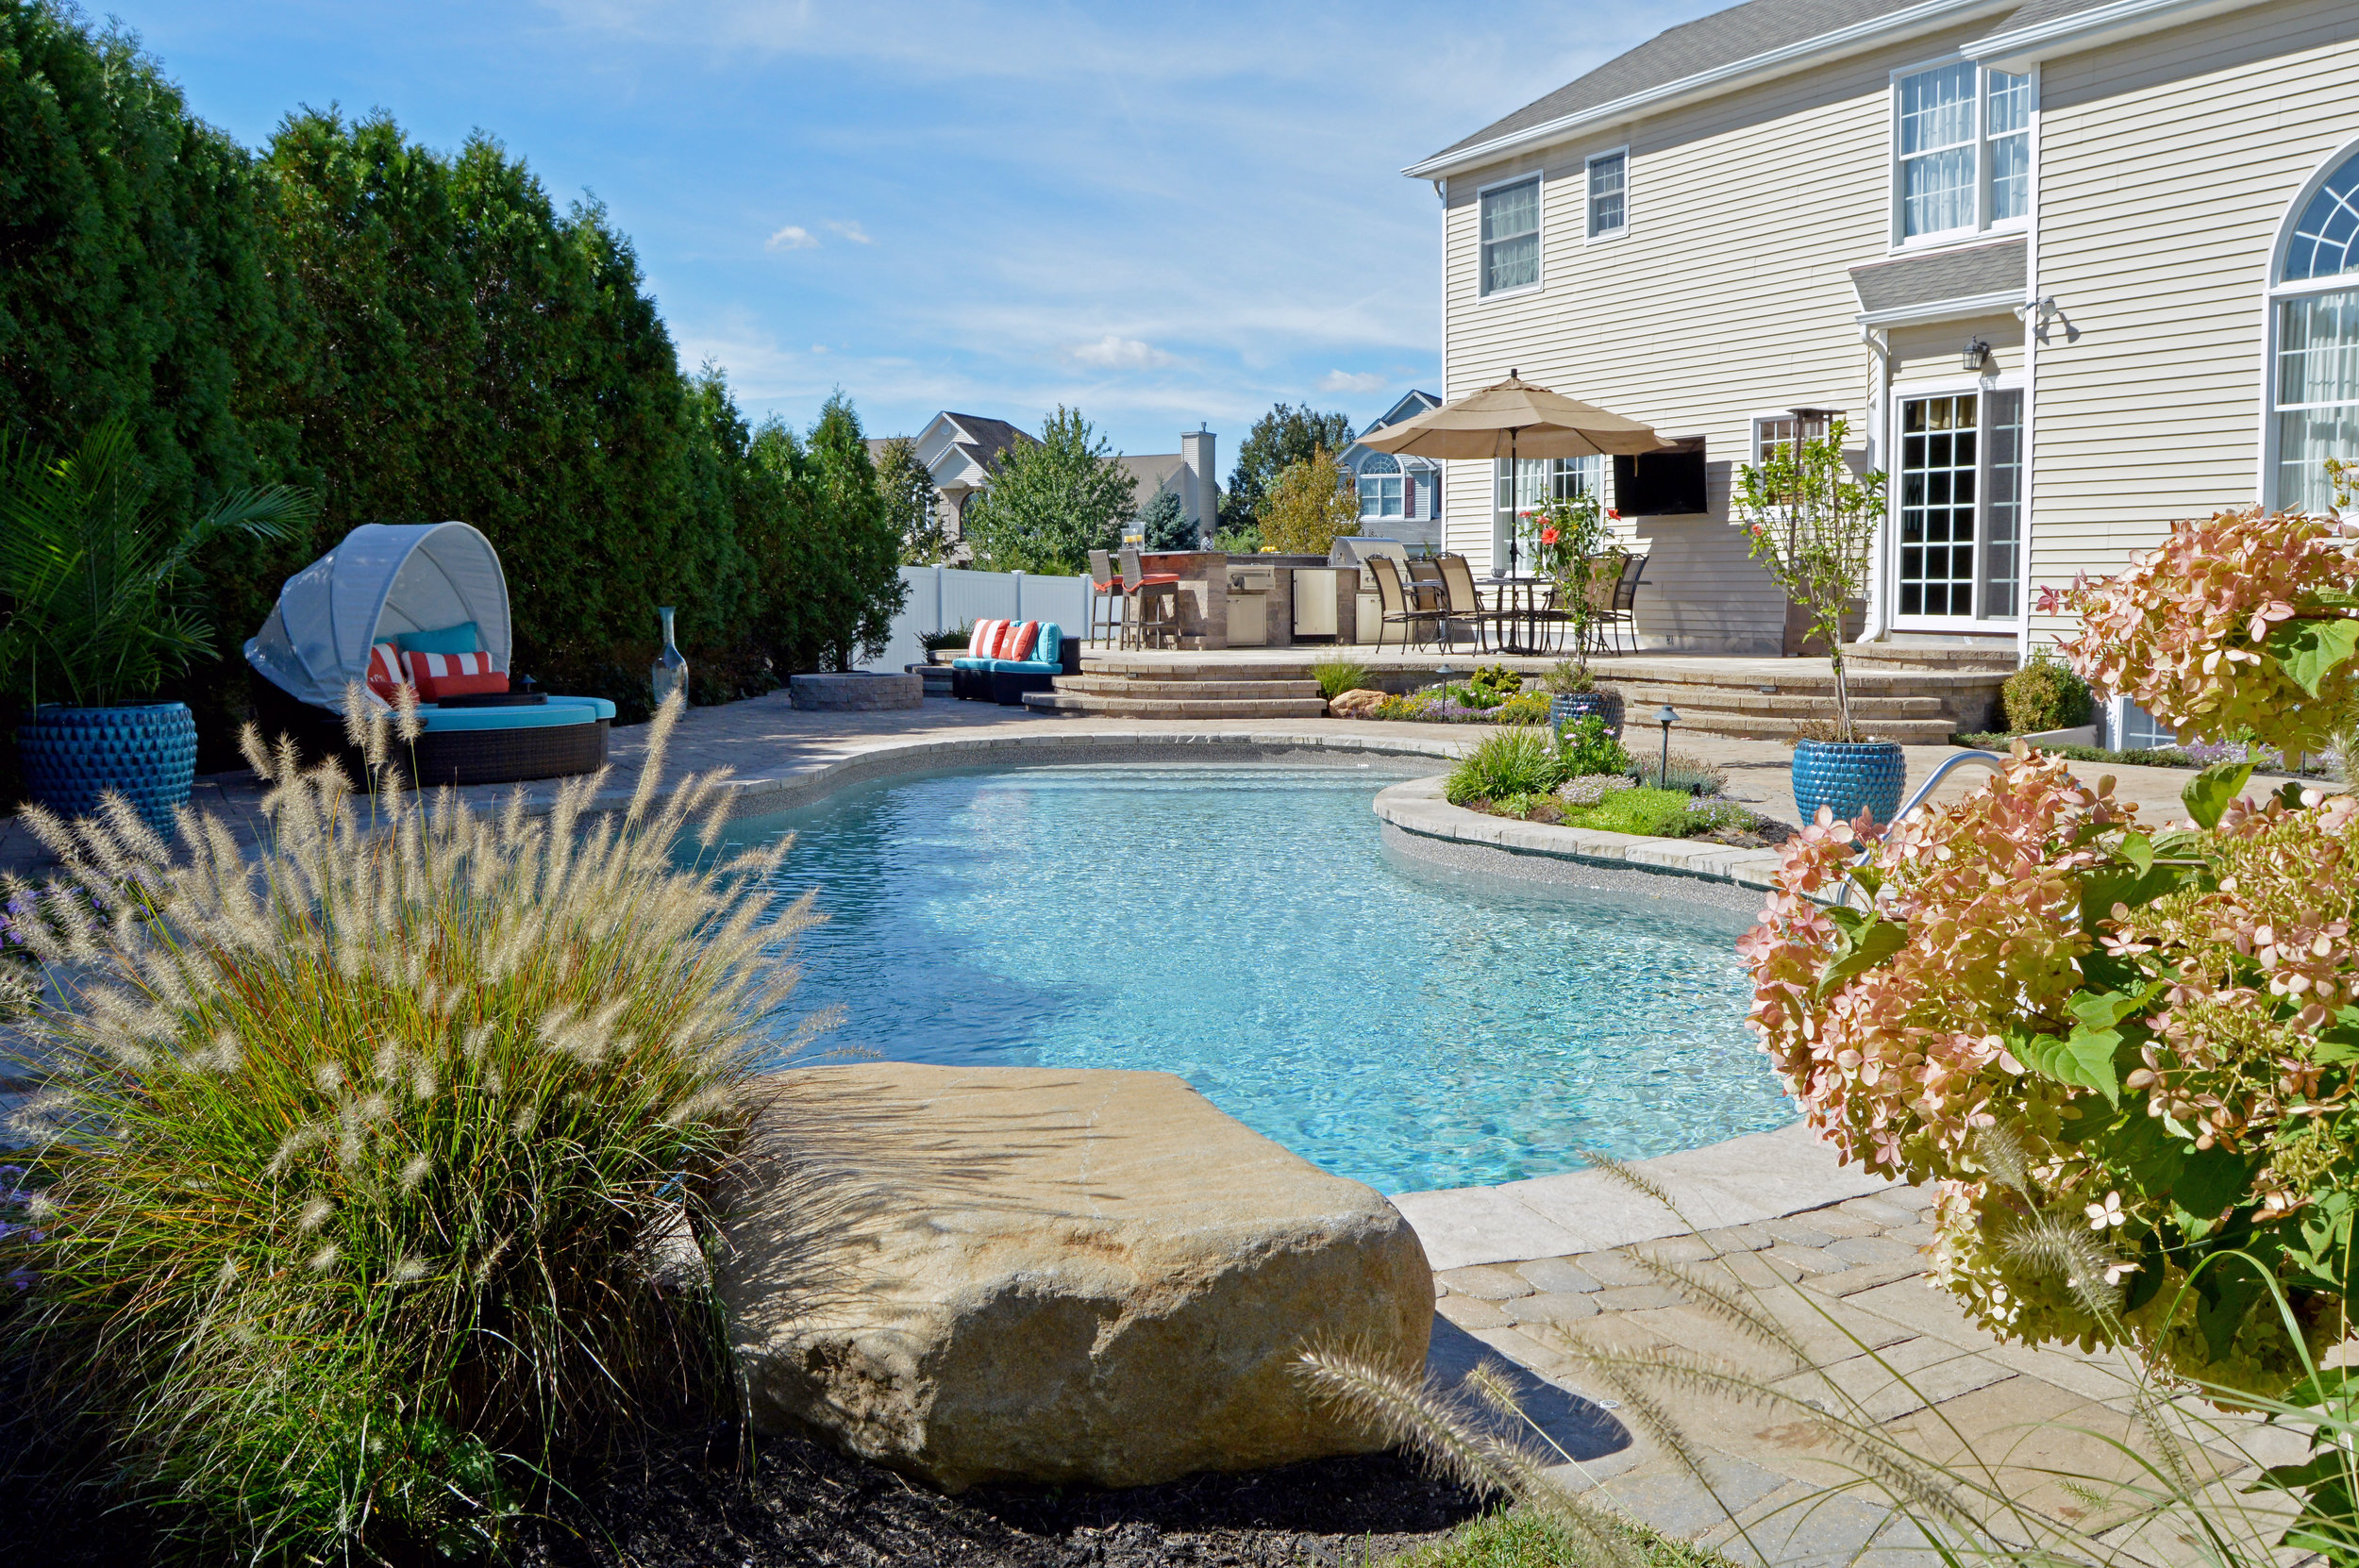 Smithtown, NY swimming pool, custom outdoor kitchen and bar and grill